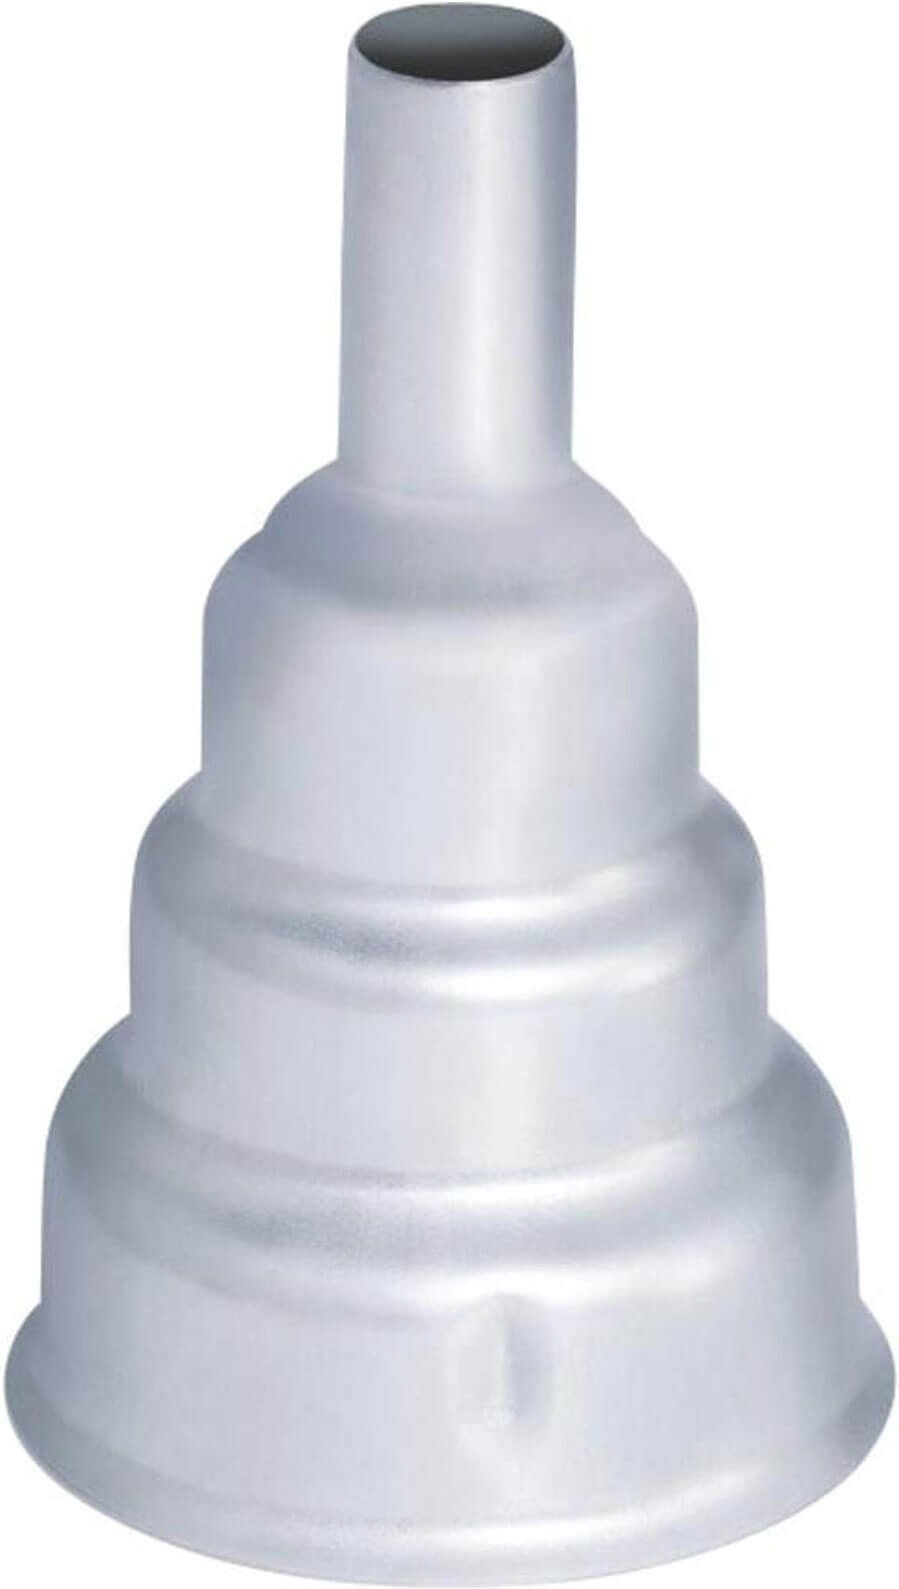 Steinel Reduction Nozzle for HL Models and HG 2120 E  2320 E and 2220 E 9mm